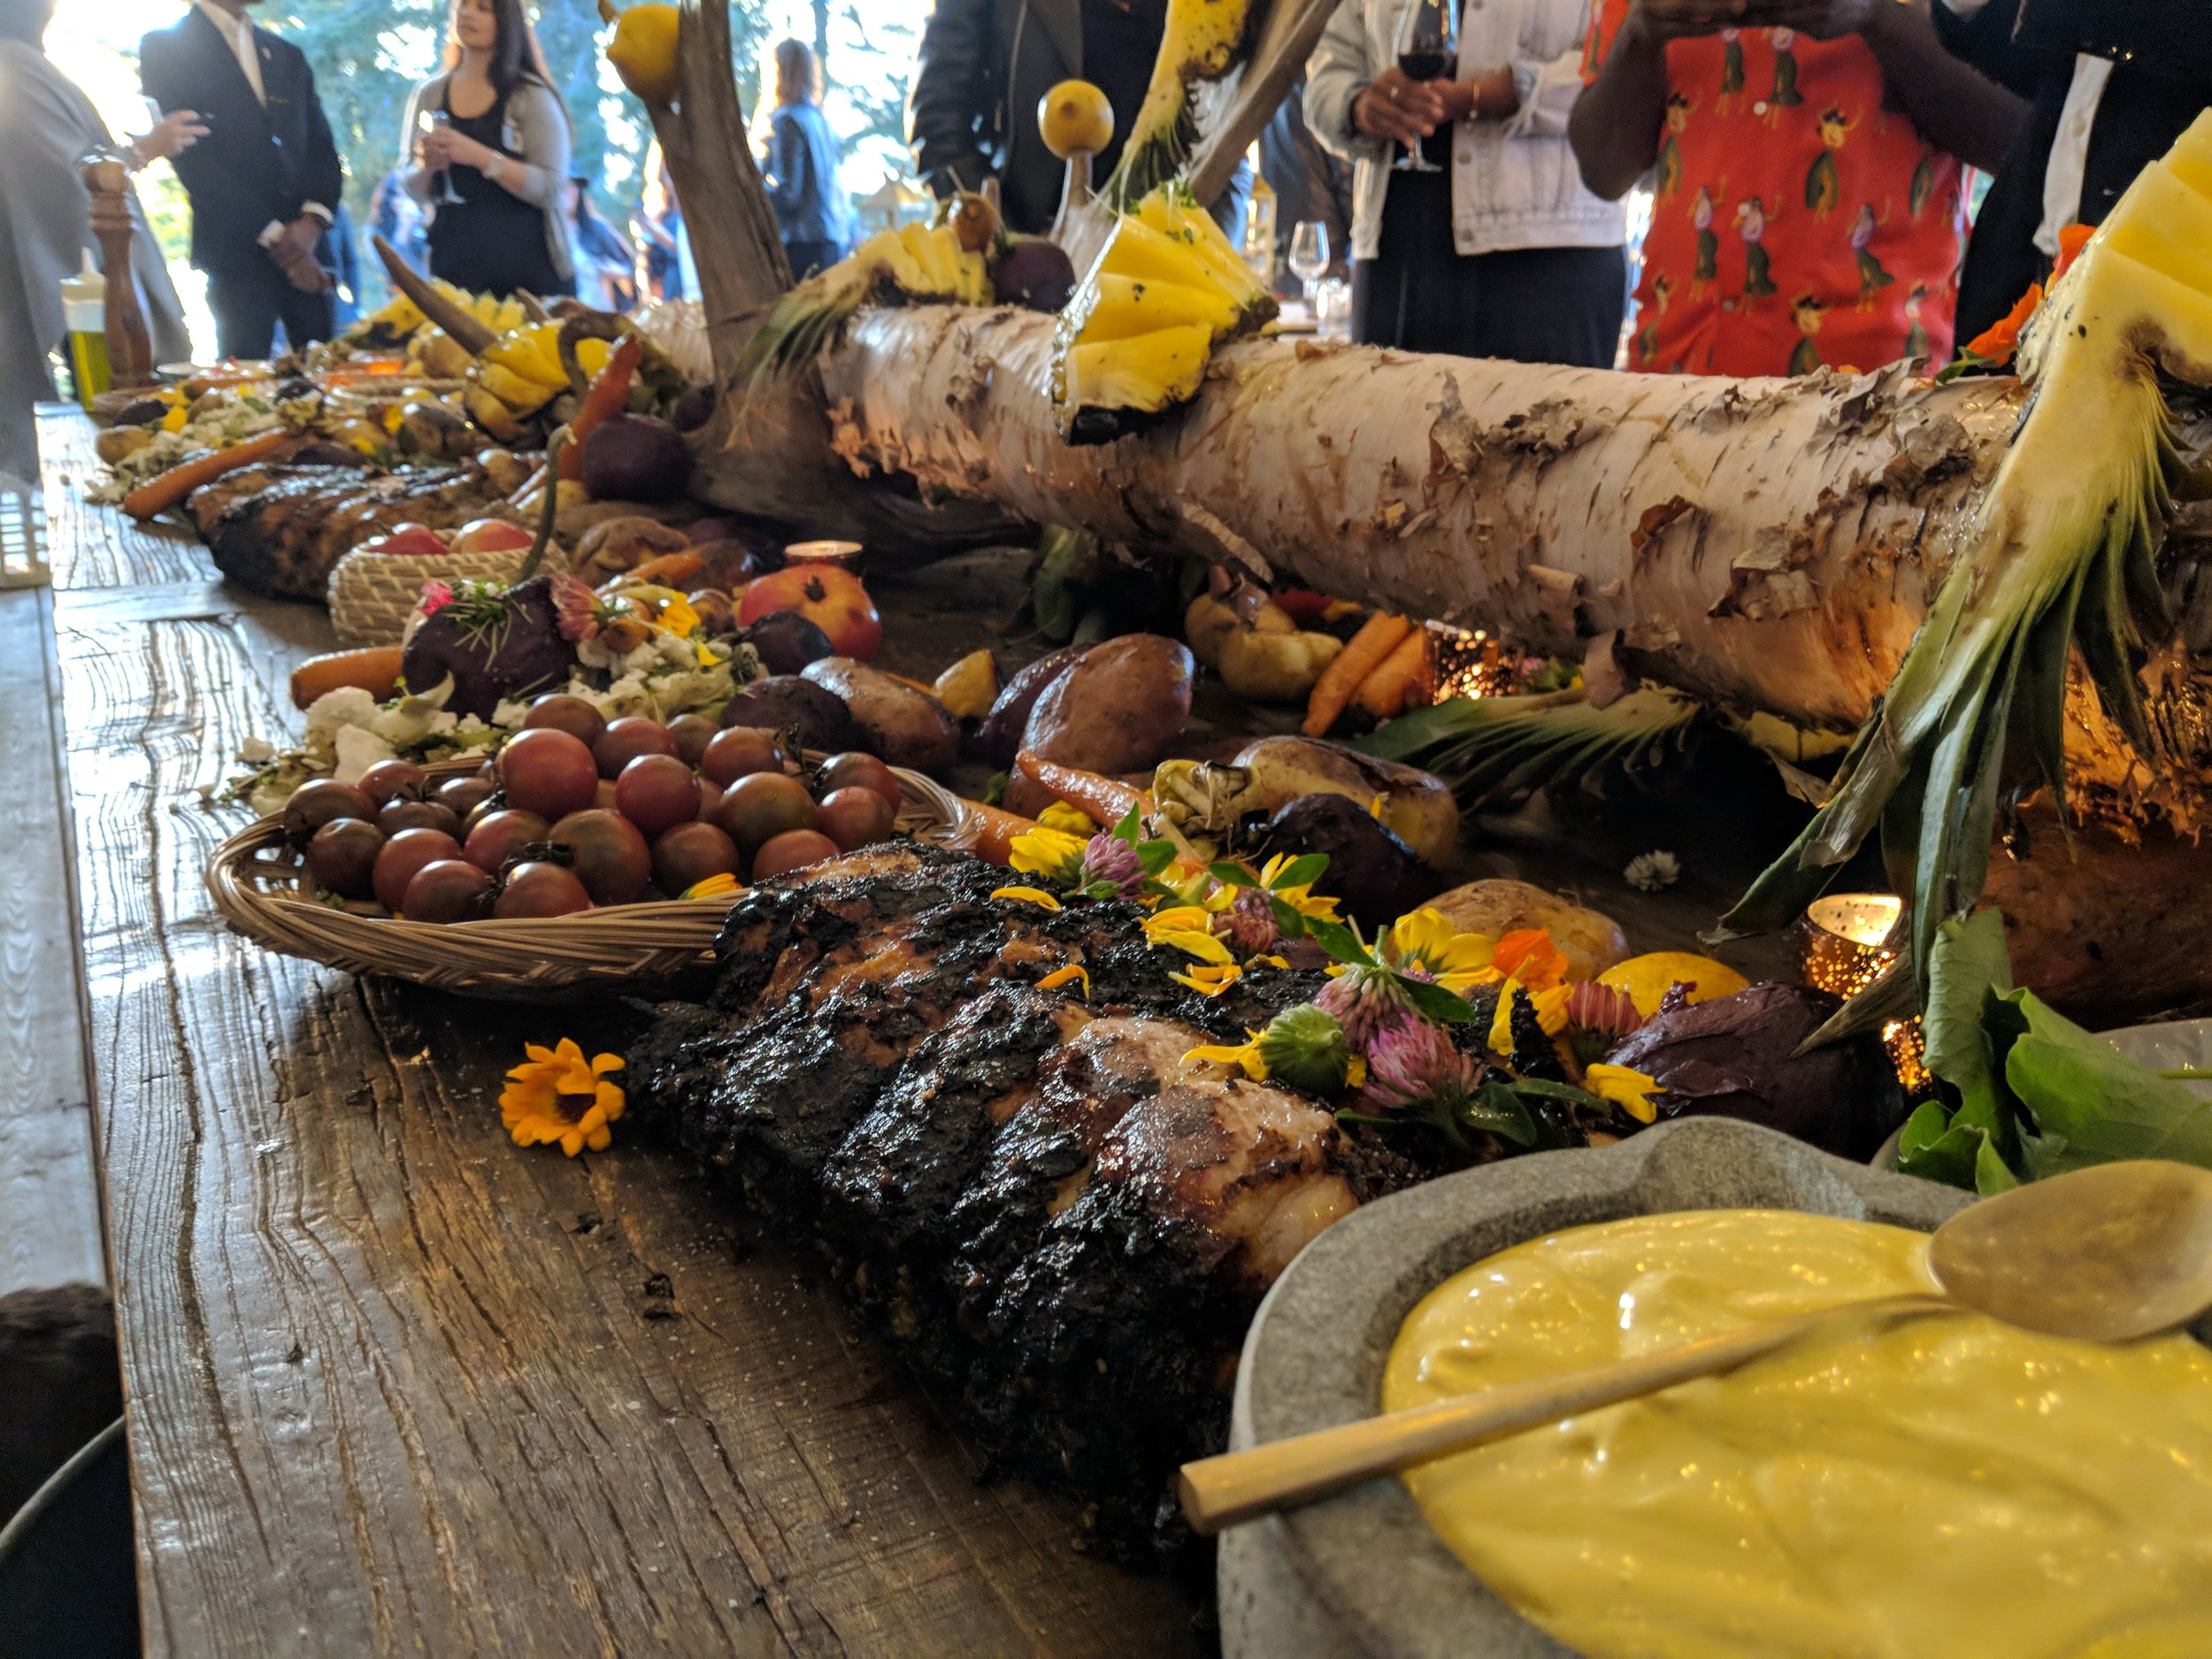 Another Harvest Table Feast, Everything Cooked Over Open Fire- Juicy Pork, Whole Chickens, Different Varieties of Tomatoes, Pineapple, Beets and More